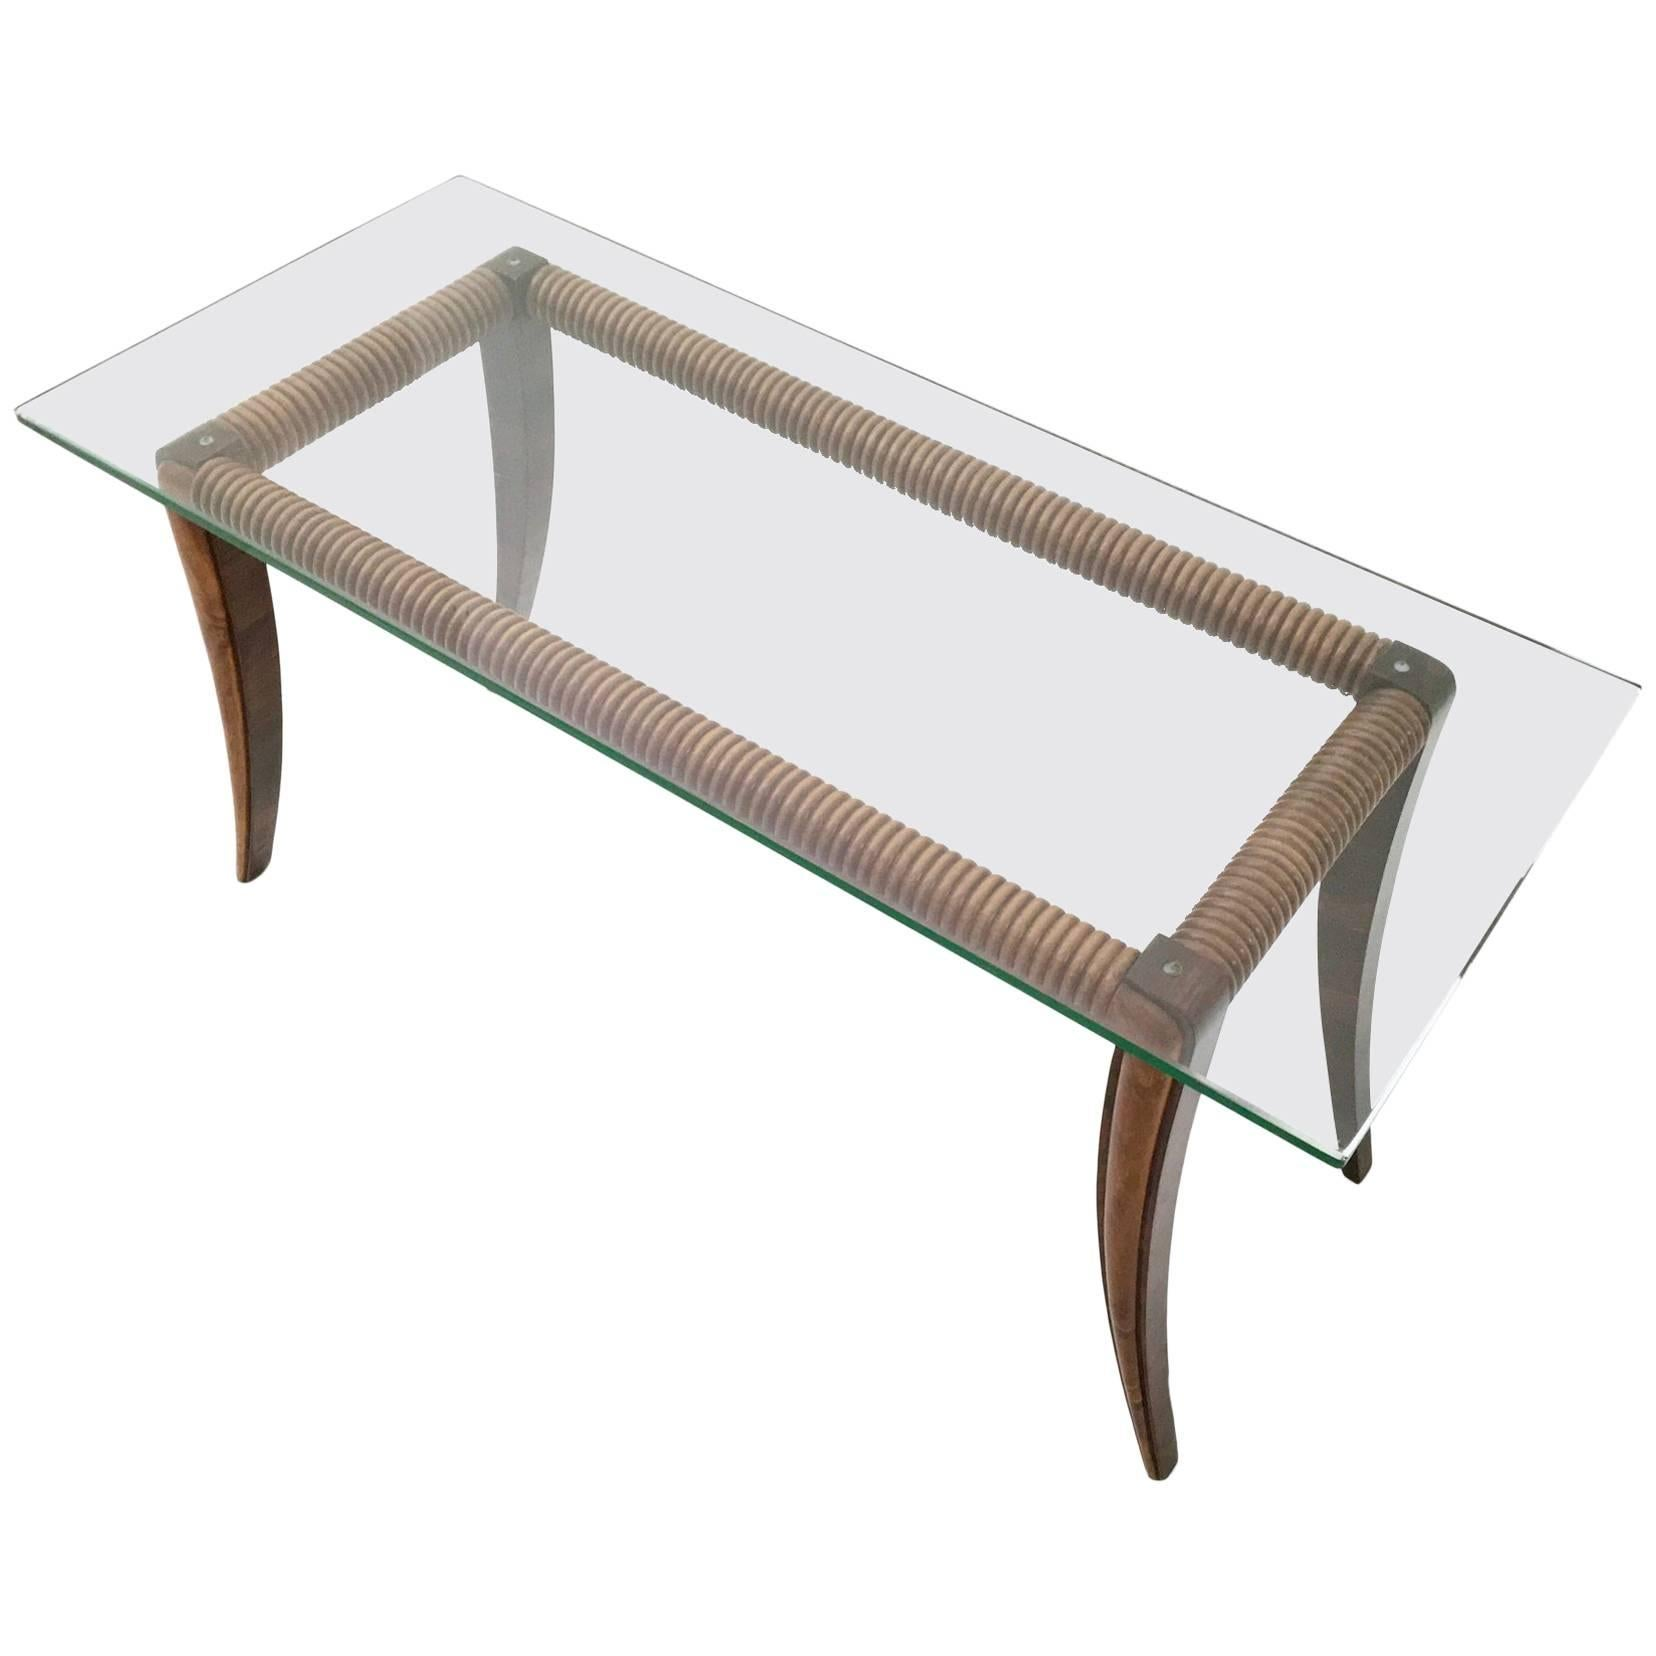 Beautiful Coffee Table Rectangular Maple And Wood Coffee Table With A Thick Glass Top Italy 1940s